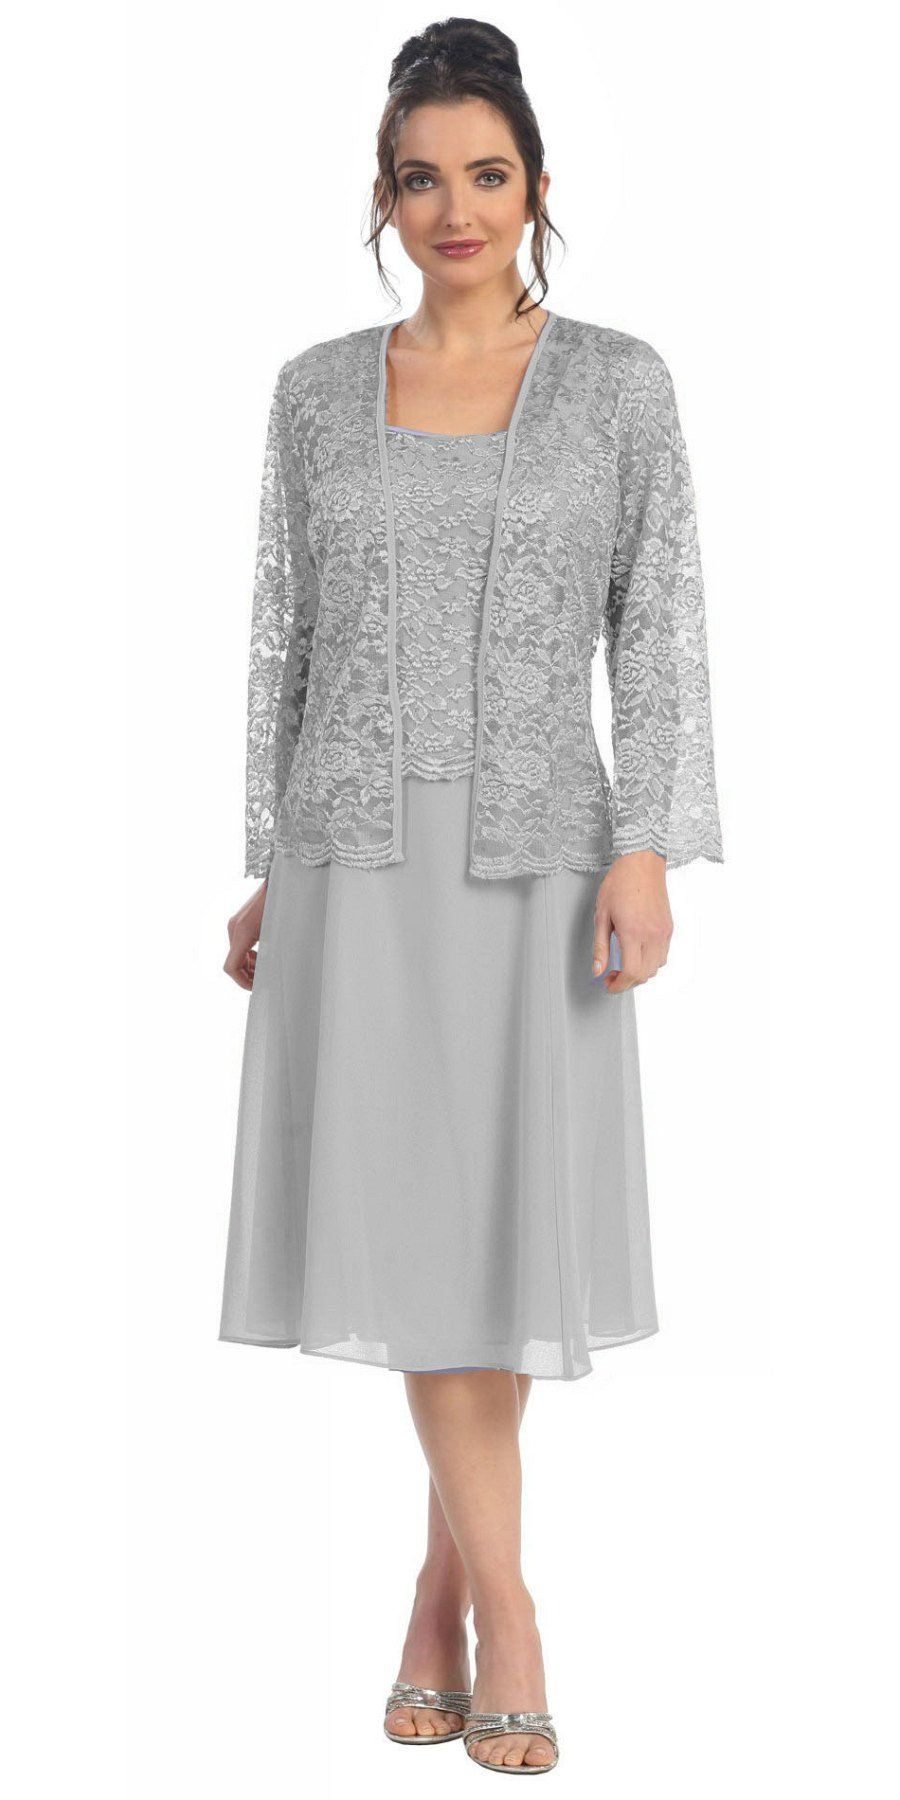 Short Silver Mother Of Groom Dress Chiffon Knee Length Lace Jacket Mother Of Groom Dresses Evening Dresses Lace Jacket